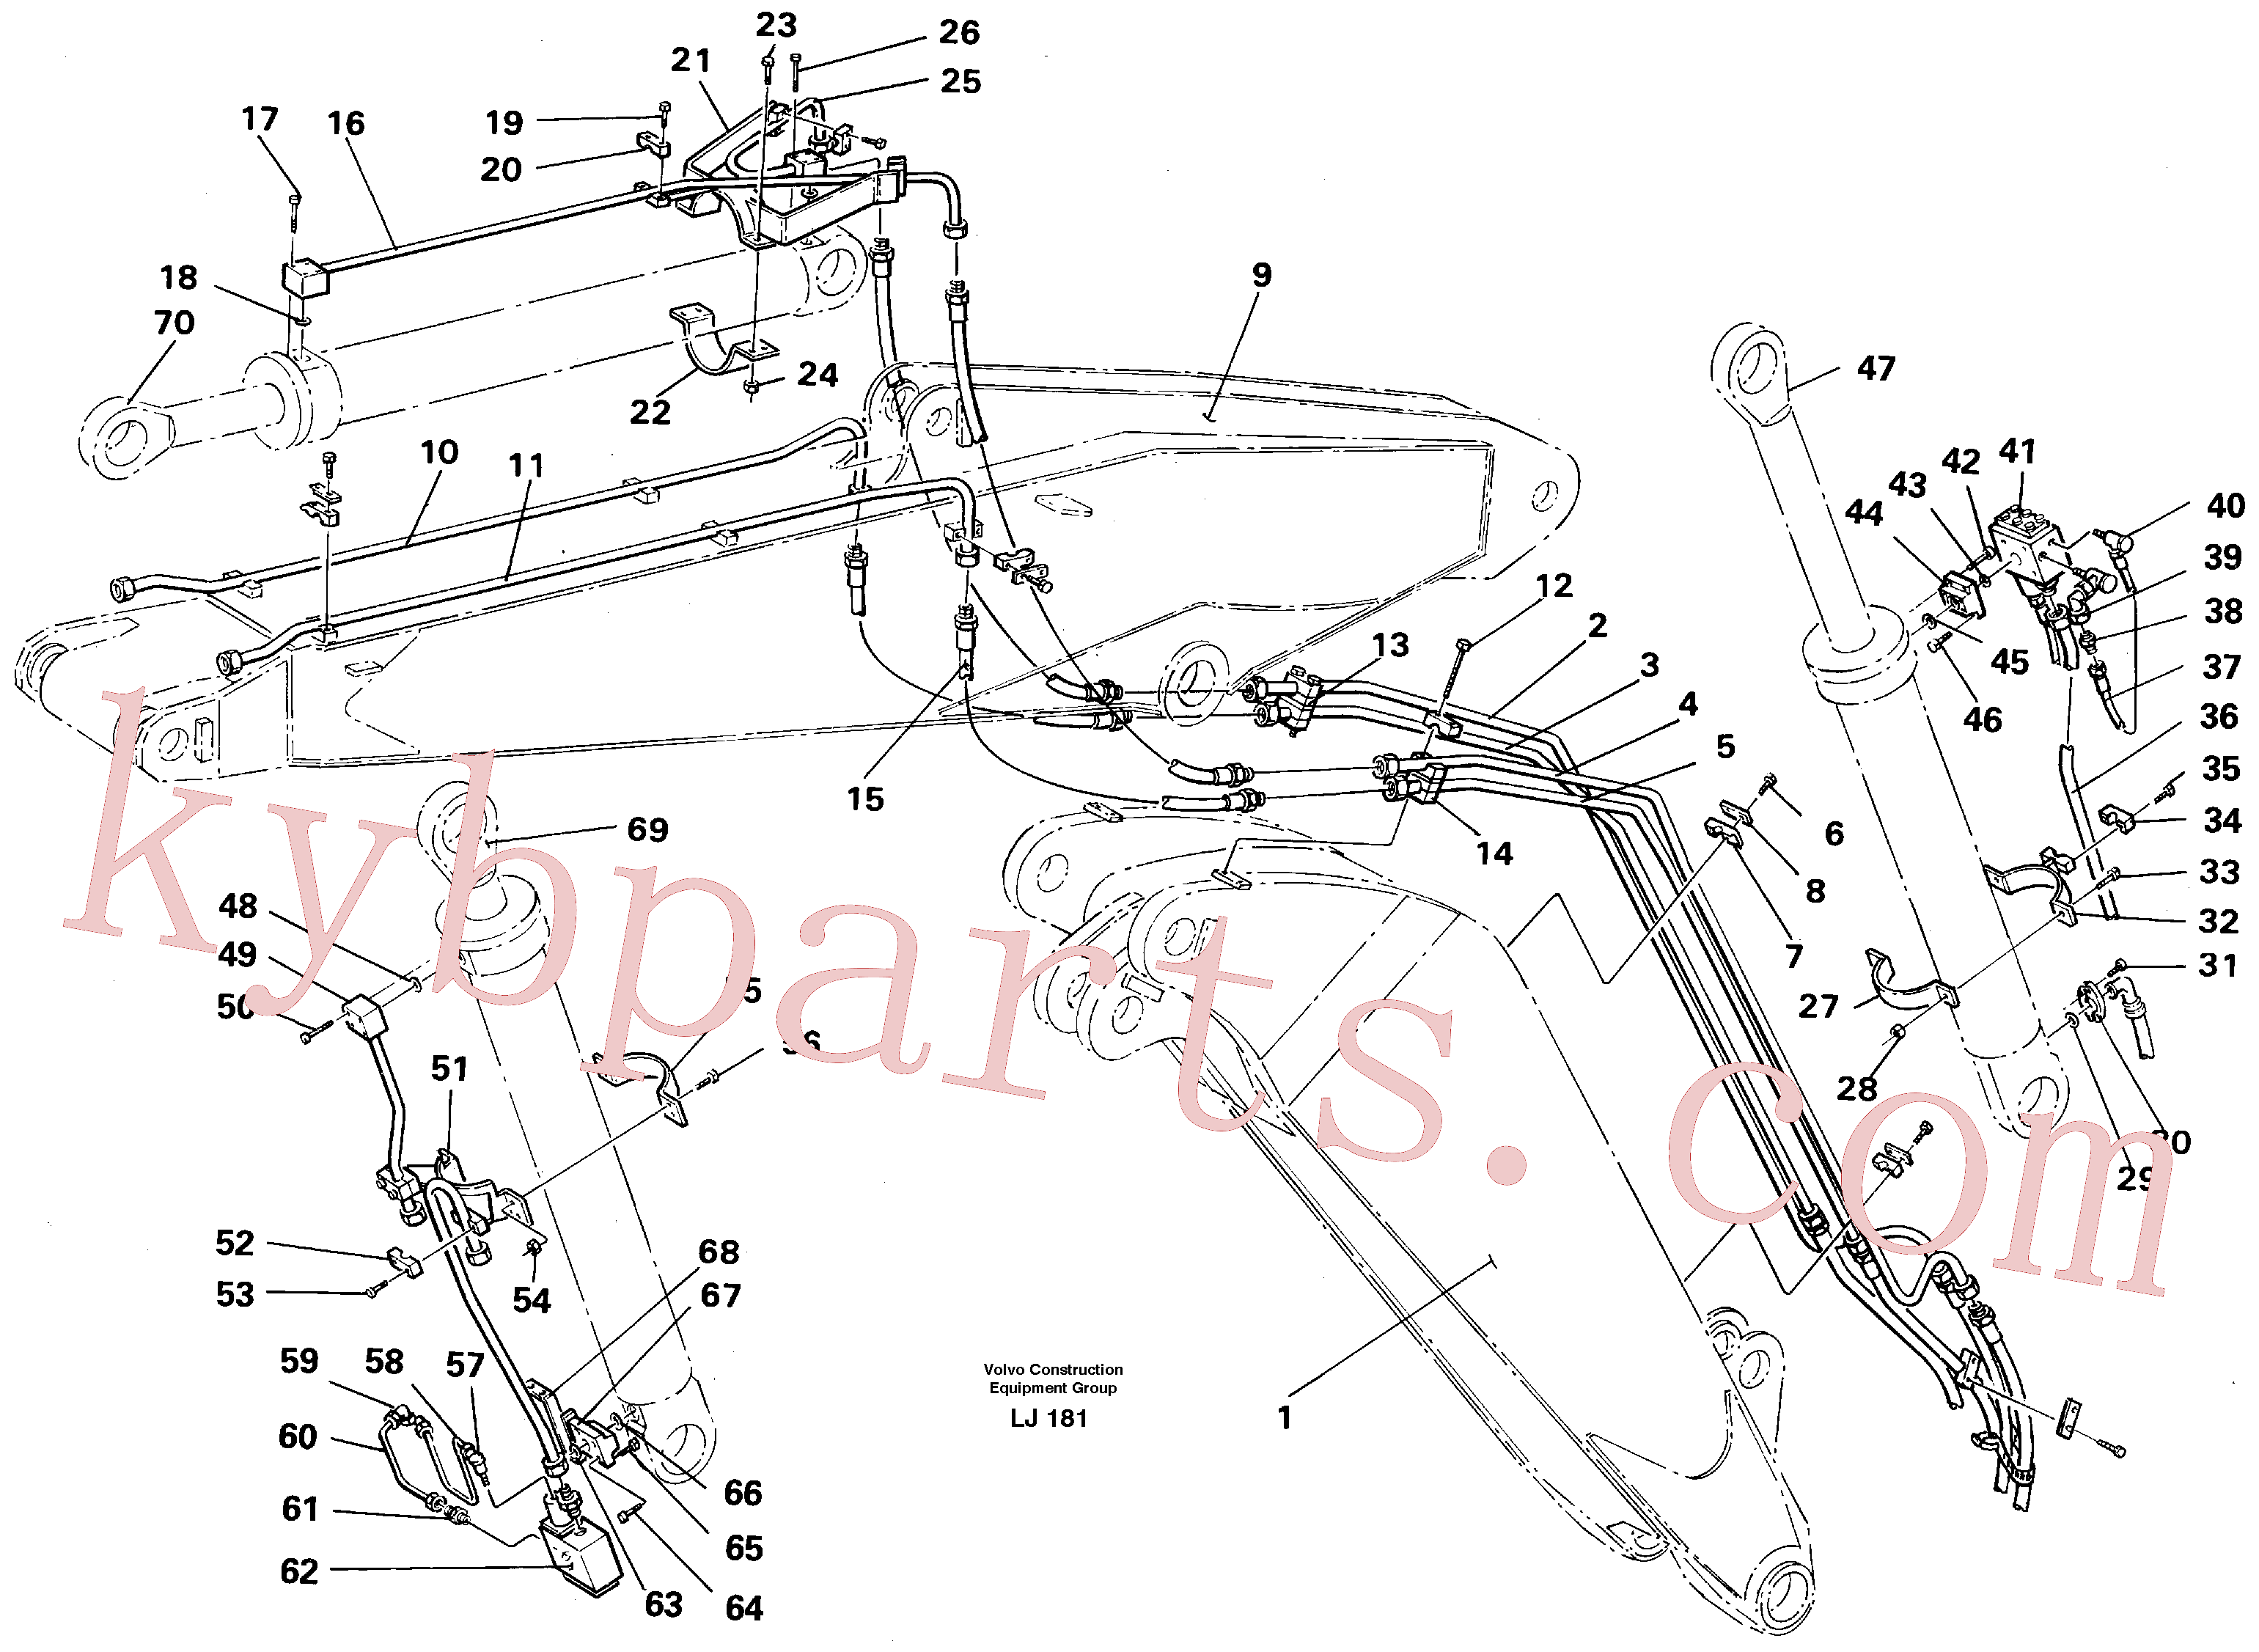 VOE14254516 for Volvo Hydraulic equipment, adjustable boom(LJ181 assembly)